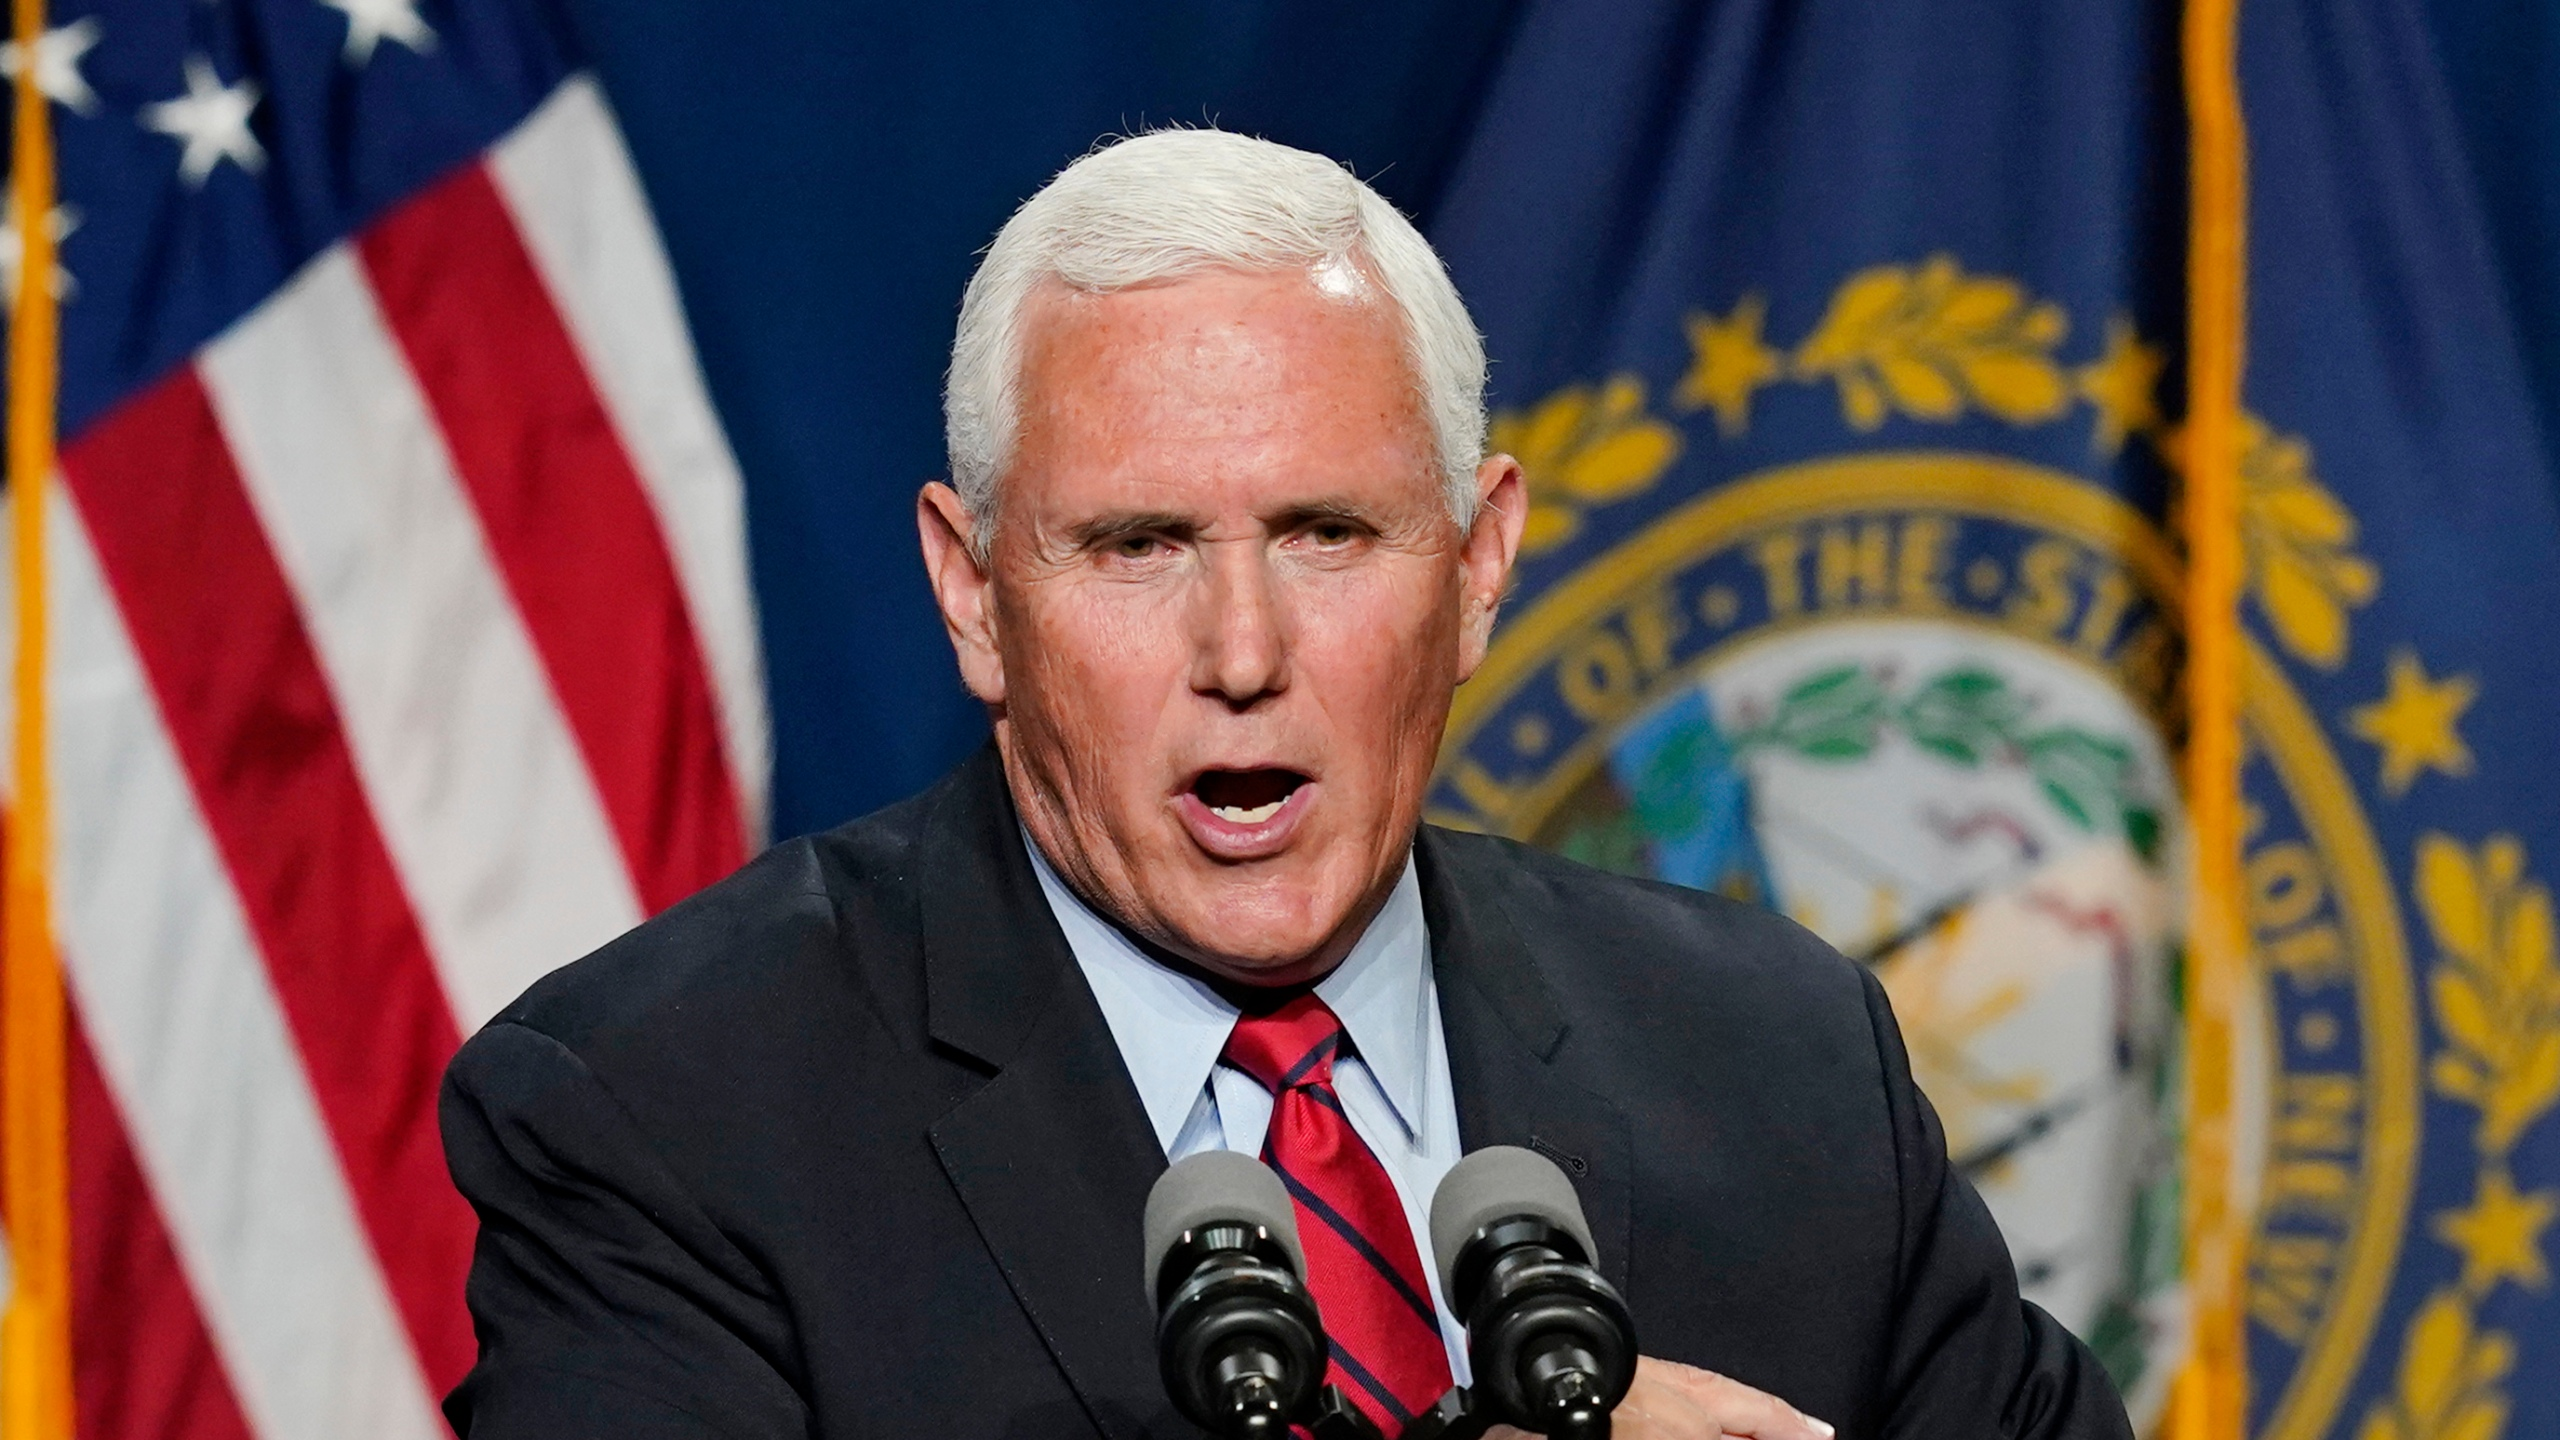 Former Vice President Mike Pence speaks at the annual Hillsborough County NH GOP Lincoln-Reagan Dinner on June 3, 2021, in Manchester, N.H. (Elise Amendola / Associated Press)